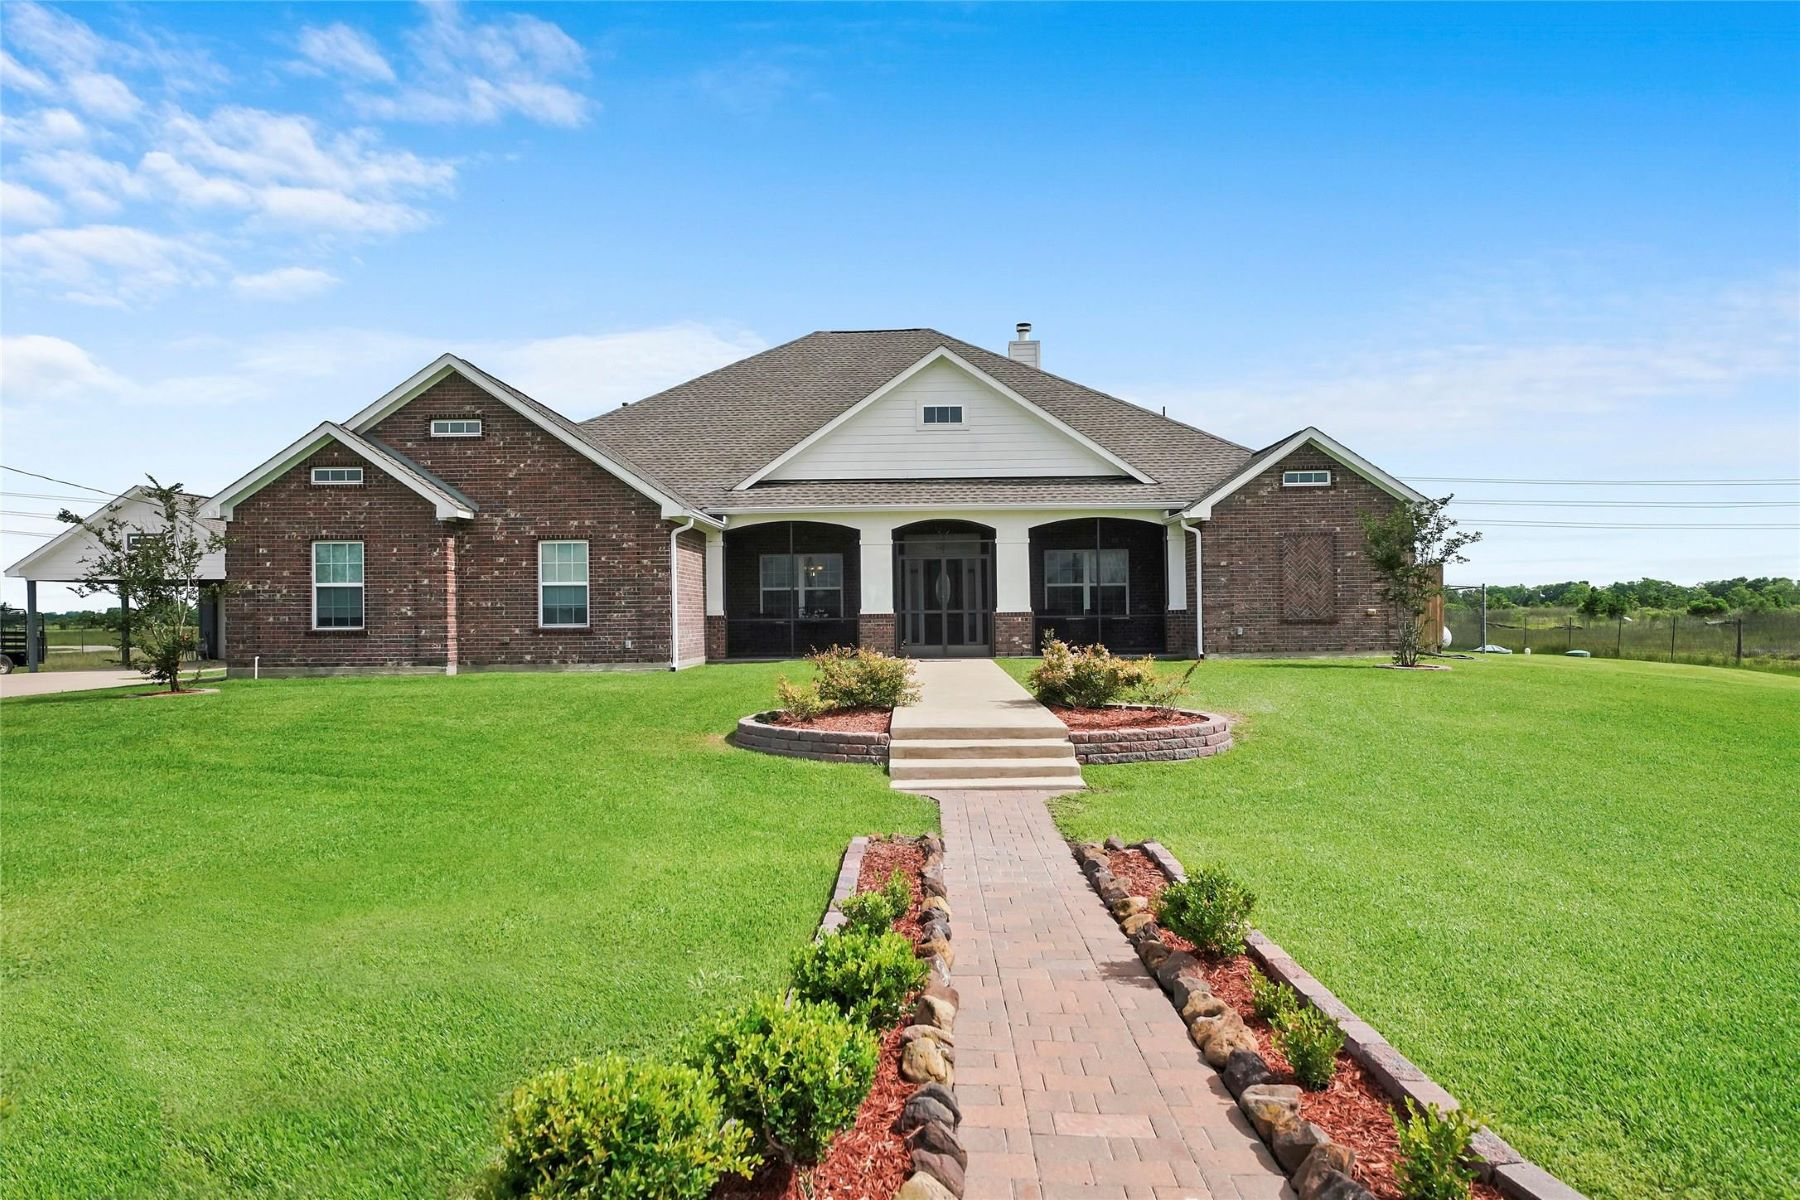 Single Family Homes for Sale at 3603 Old Atascocita Road Huffman, Texas 77532 United States